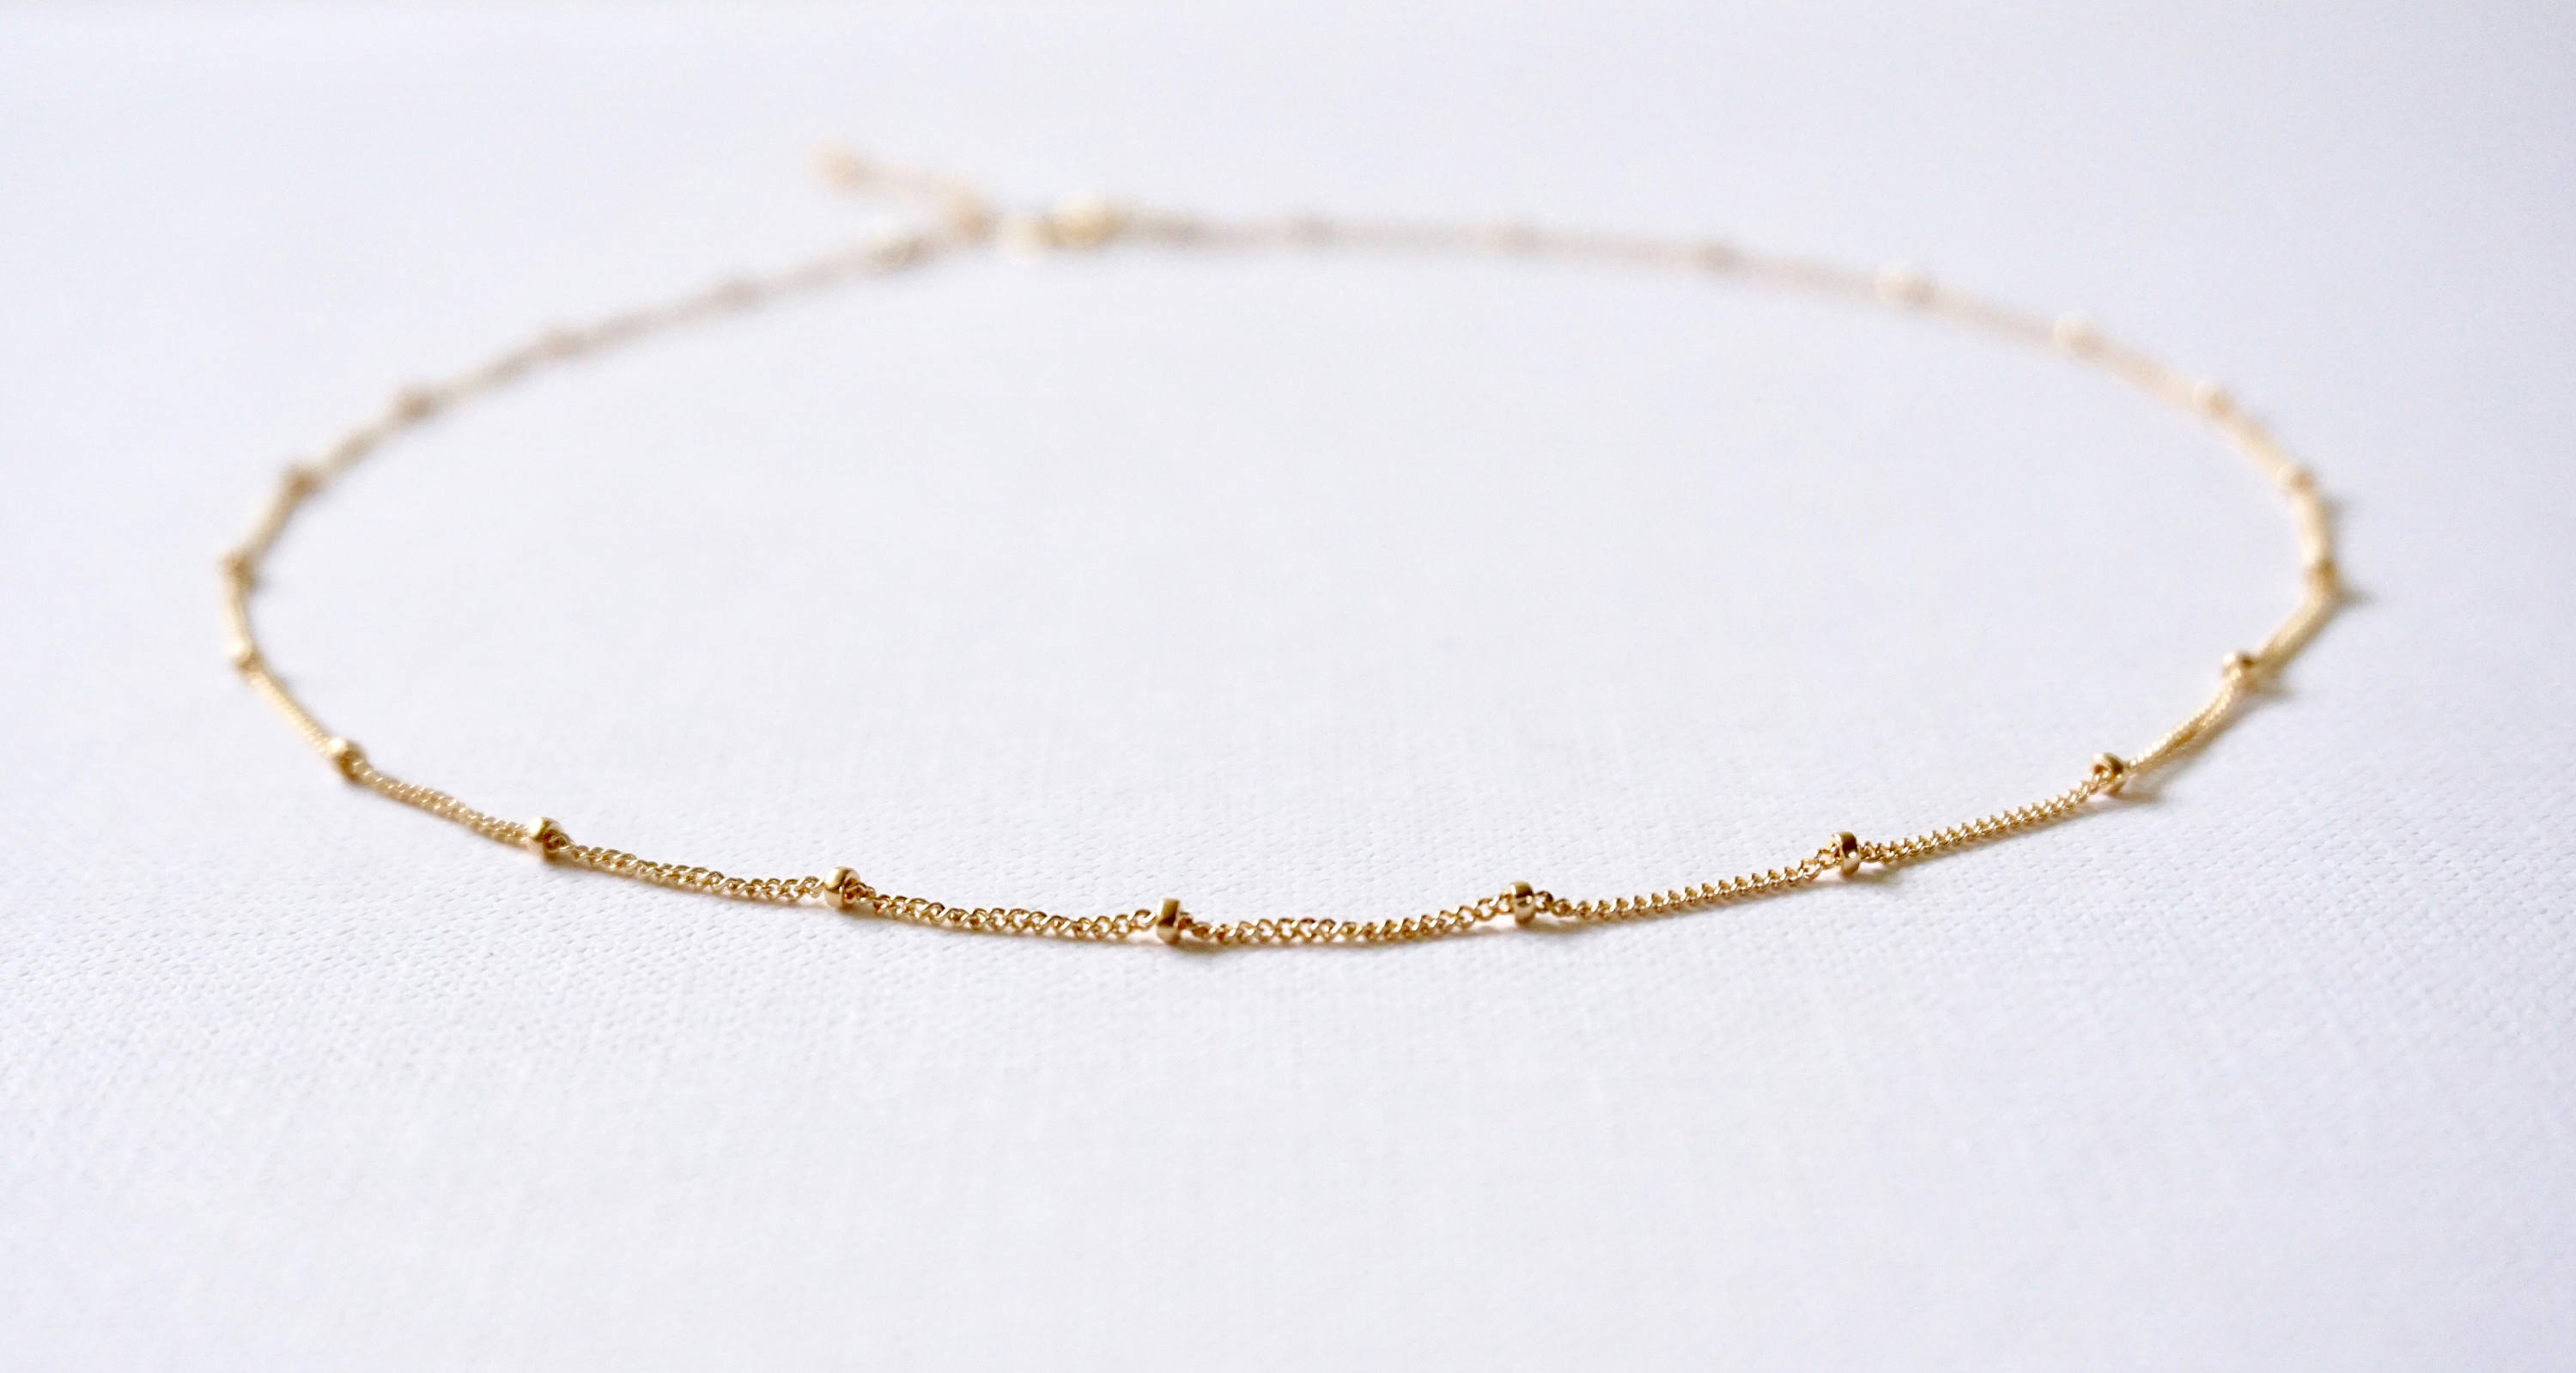 Beaded Chain Necklace, Beaded Chain Choker, Gold Filled Beaded Satellite Chain, Sterling Silver Satellite Chain, Rose Gold Beaded Chain With Regard To Recent Beaded Chain Necklaces (View 3 of 25)